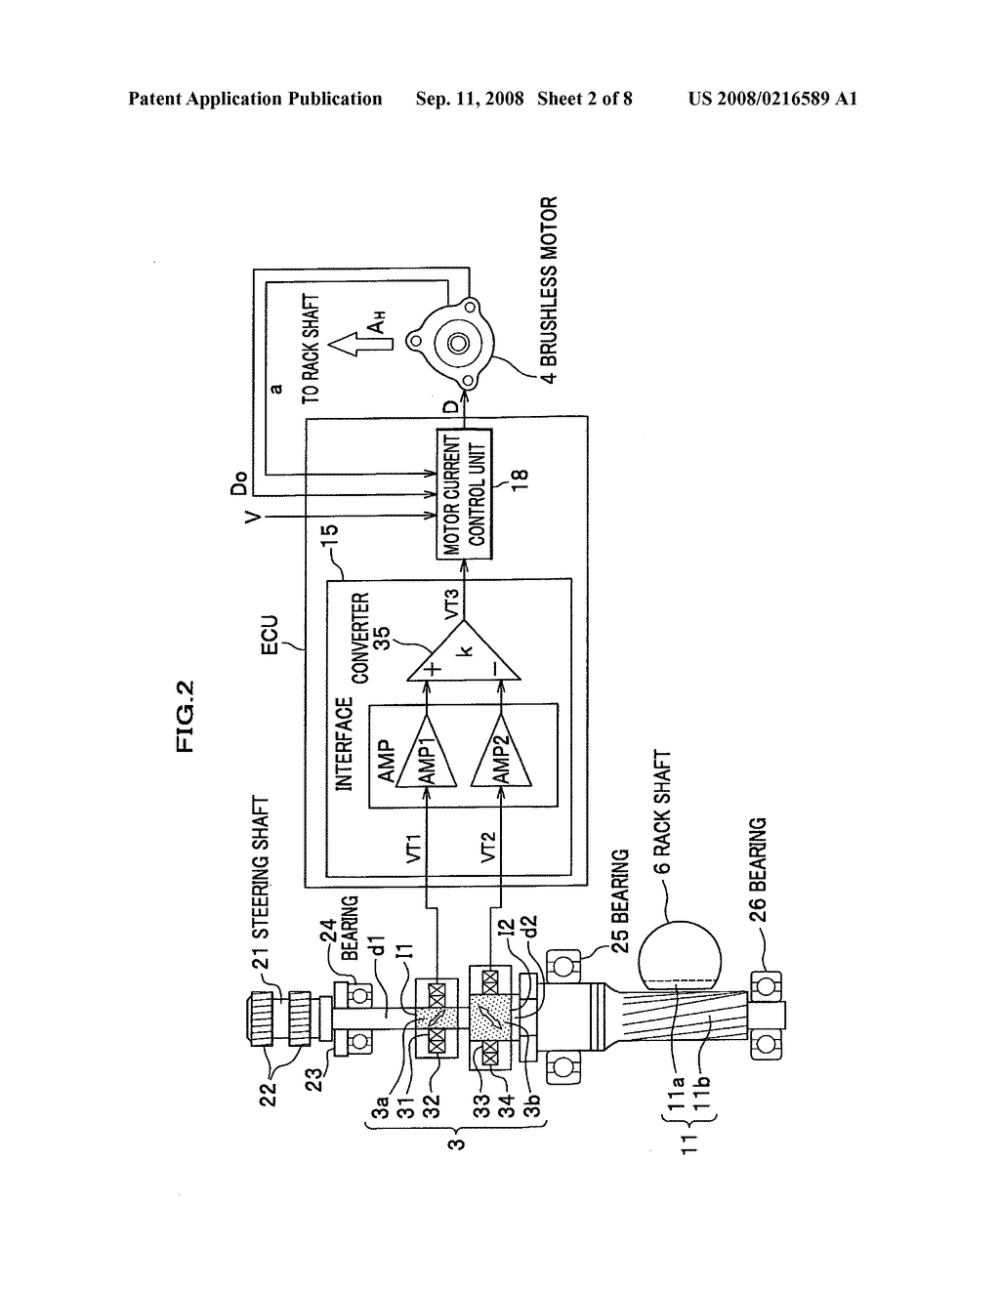 medium resolution of power steering schematic wiring diagrampower steering schematic diagram wiring diagram centremagnetostrictive torque sensor and electric power